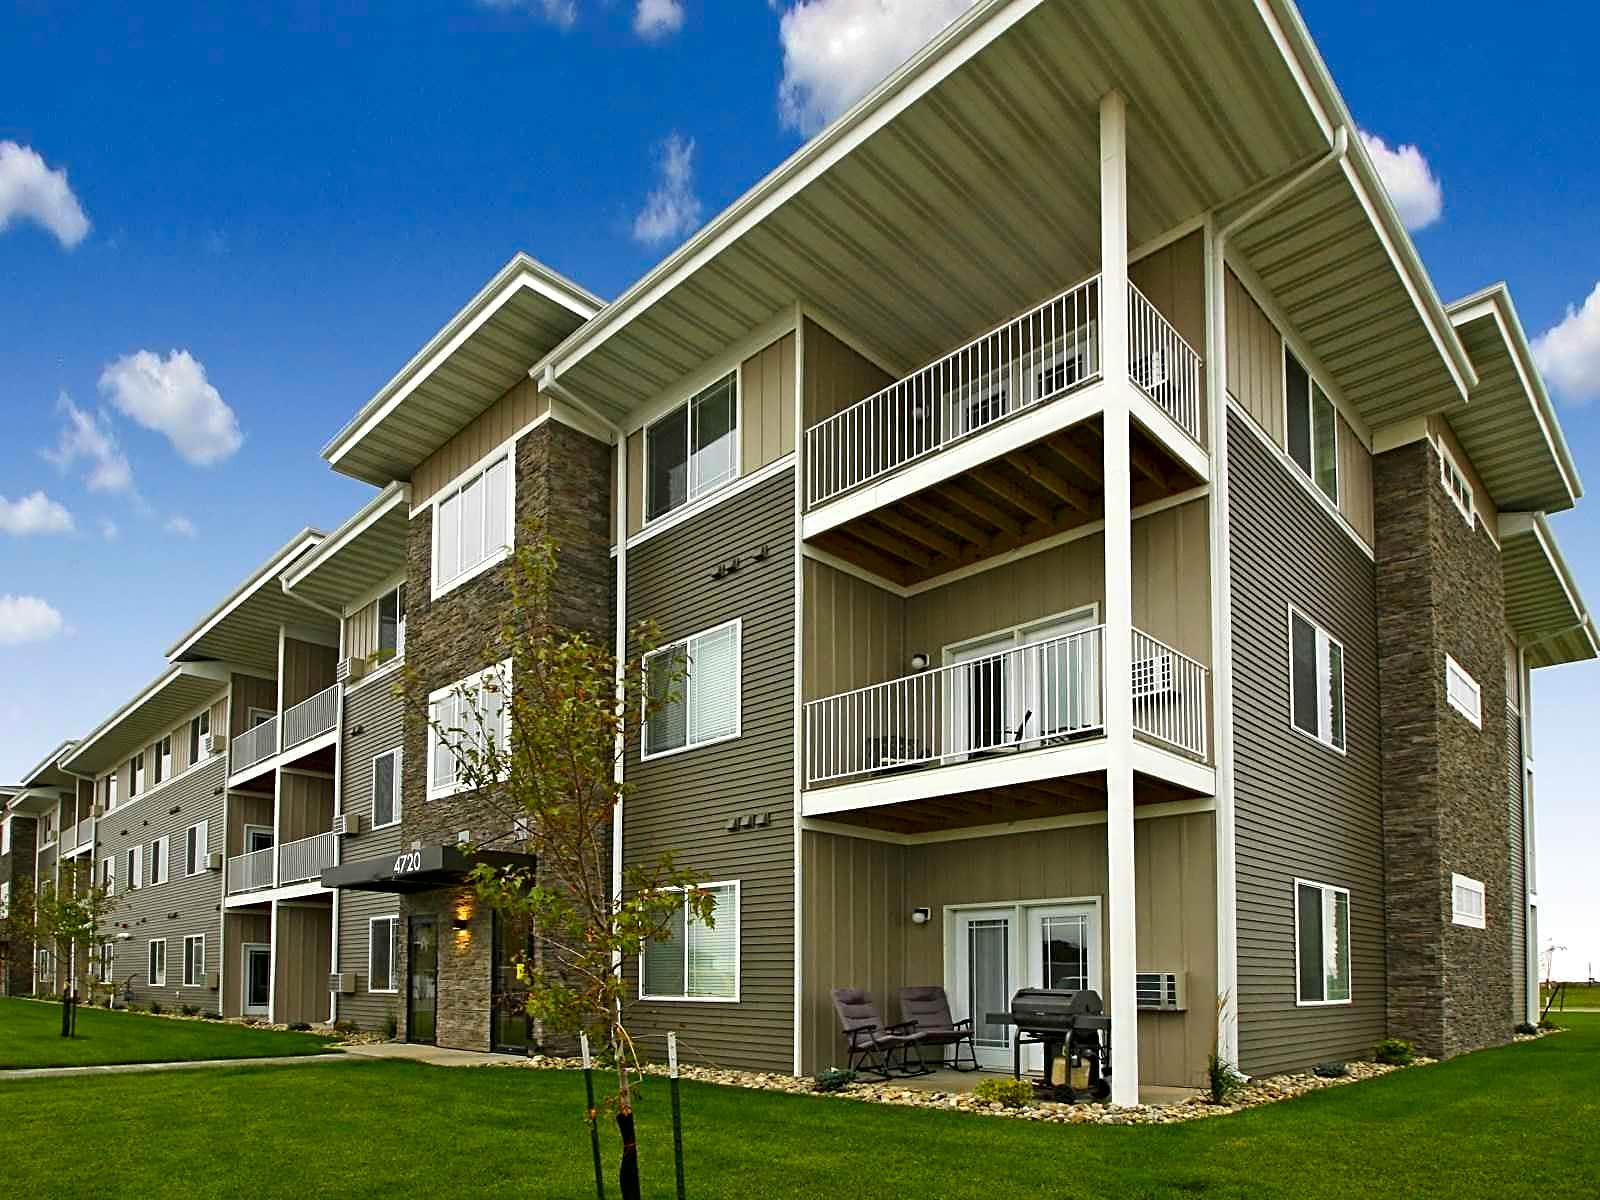 Apartments Near NDSU Timber Creek Apartments for North Dakota State University Students in Fargo, ND